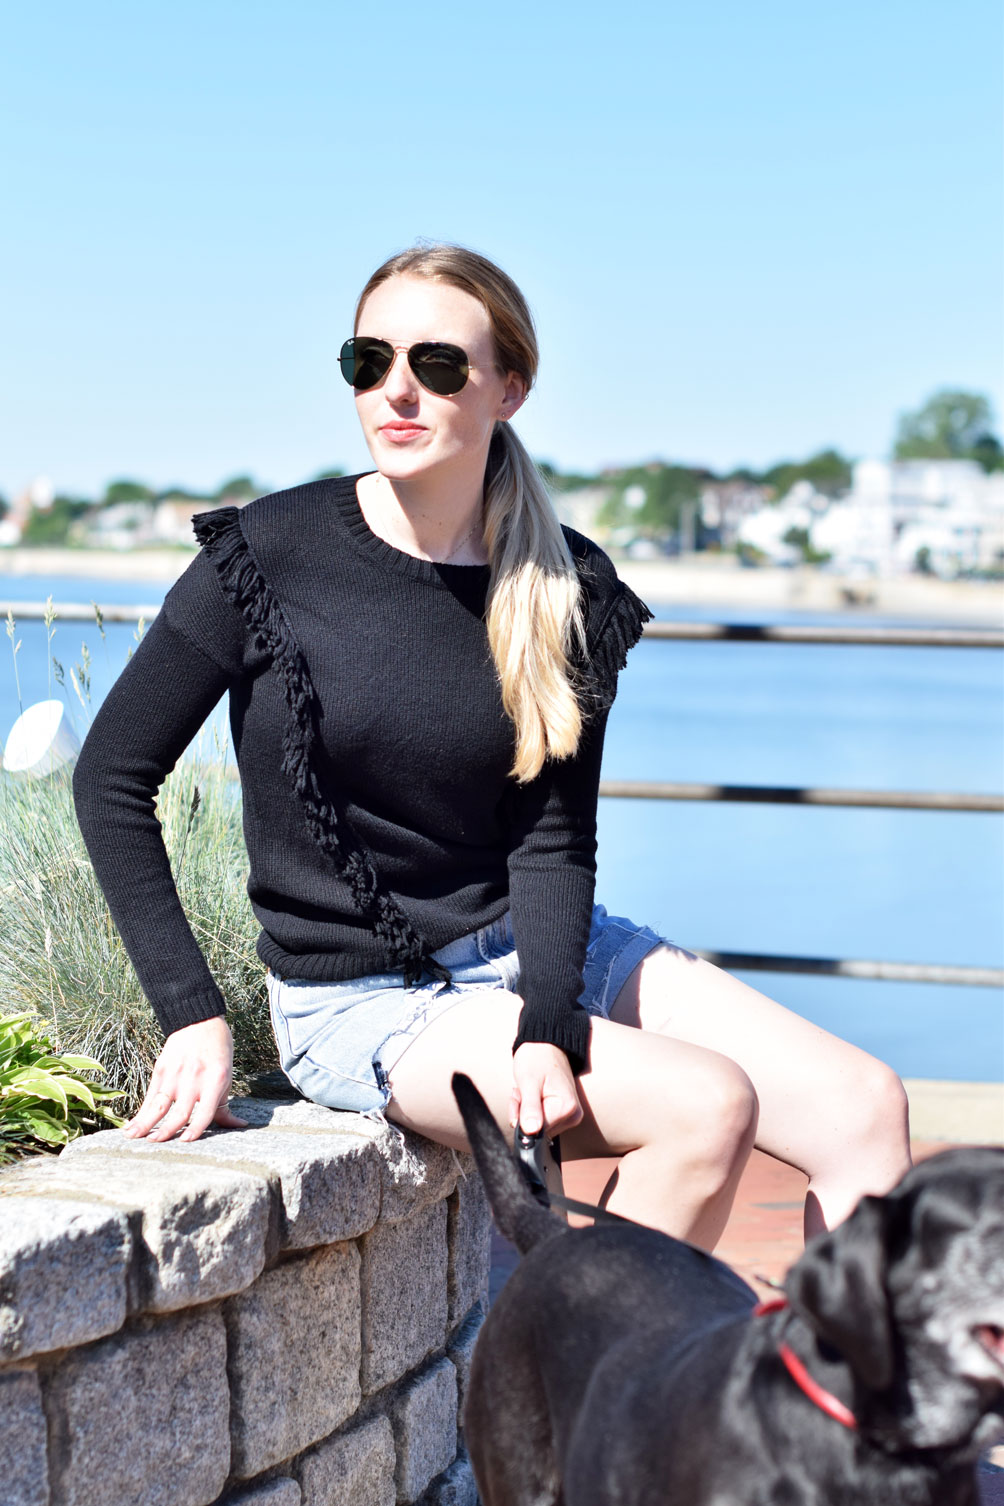 summer style from Leslie Musser of one brass fox wearing a fringe crewneck sweater with cutoff shorts and platform sneakers